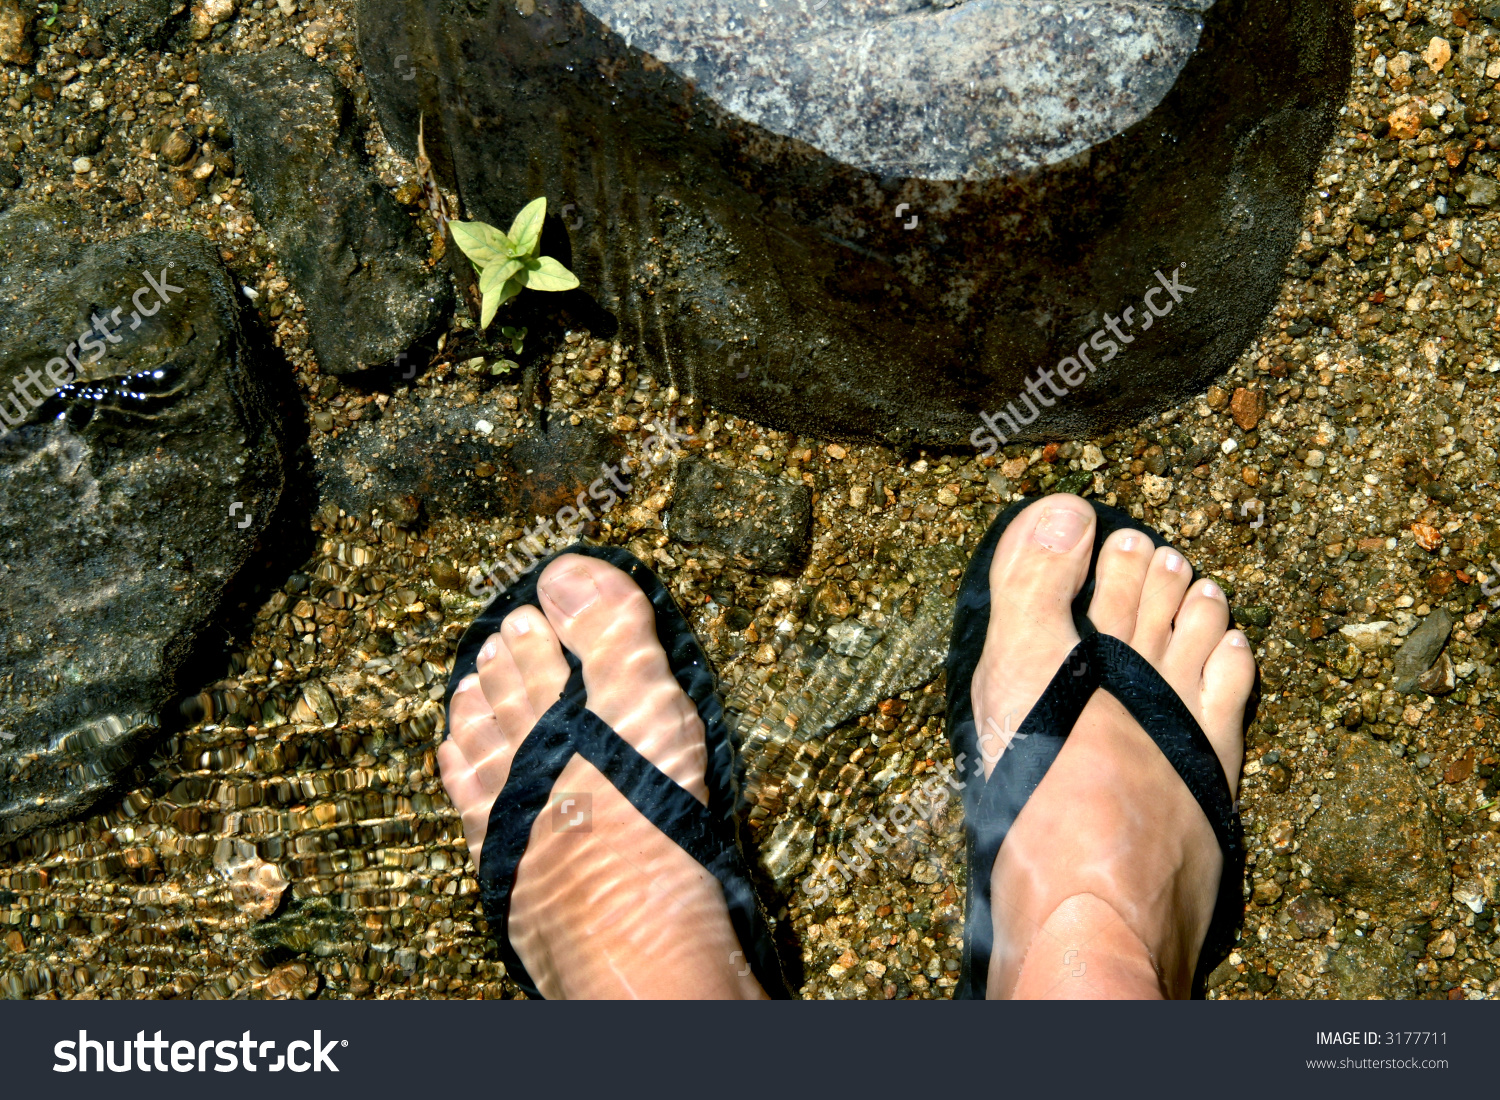 Woman'S Feet With A Pair Of Flip Flops Cooling In Water Stock.